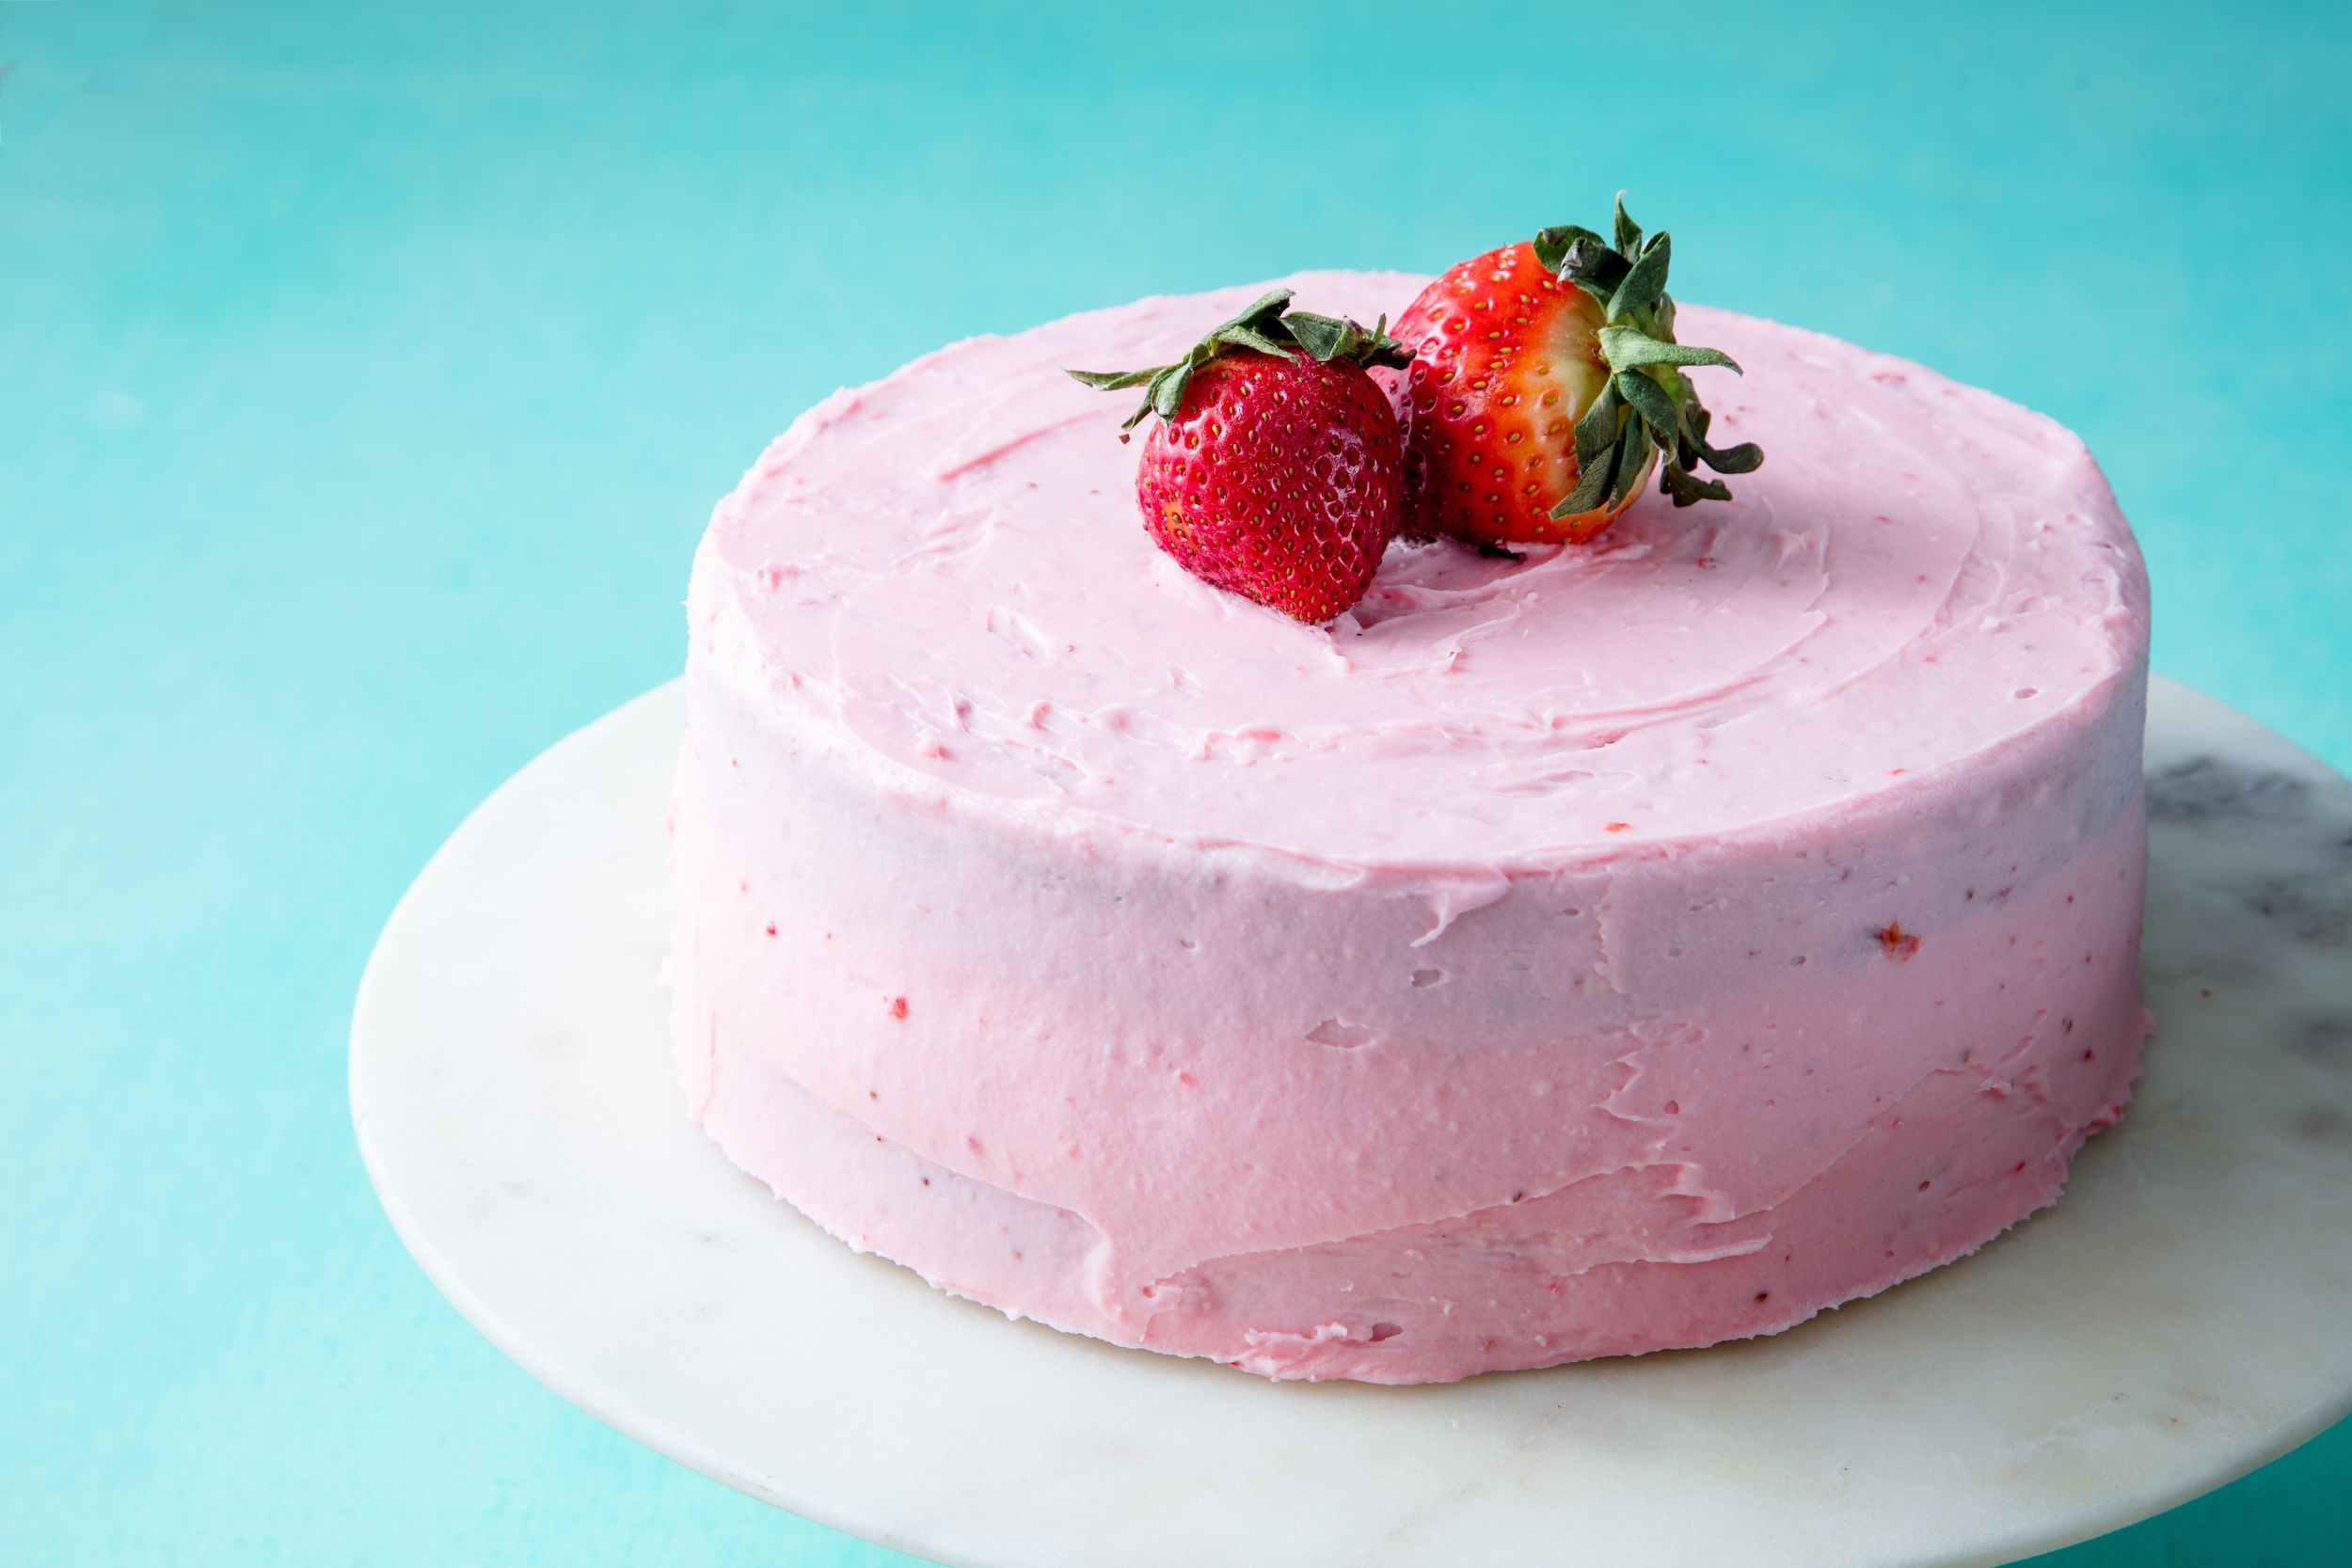 Best Homemade Strawberry Cake Recipe - How to Make Homemade ...